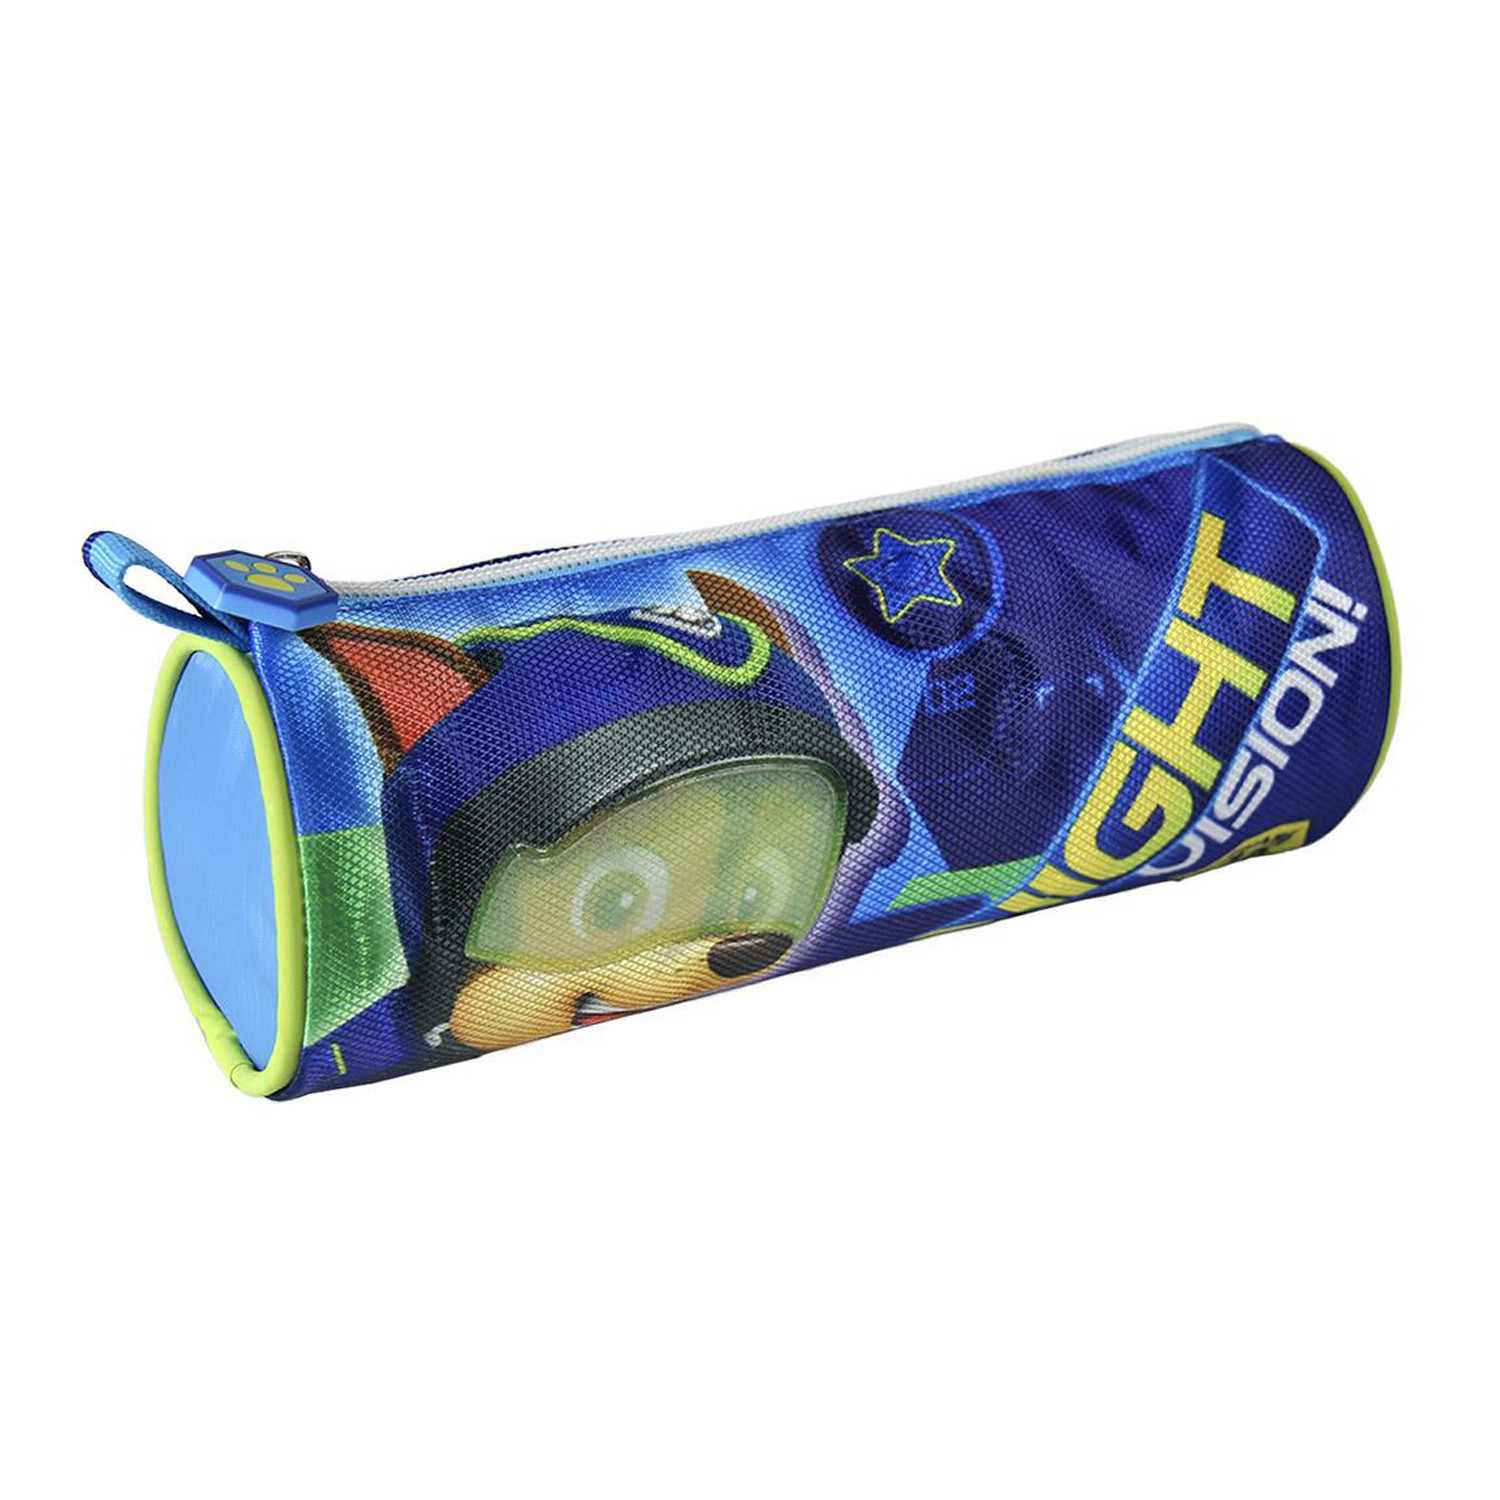 Case Cylindrical pencil case Night Vision Patrol Canine Original Home and More